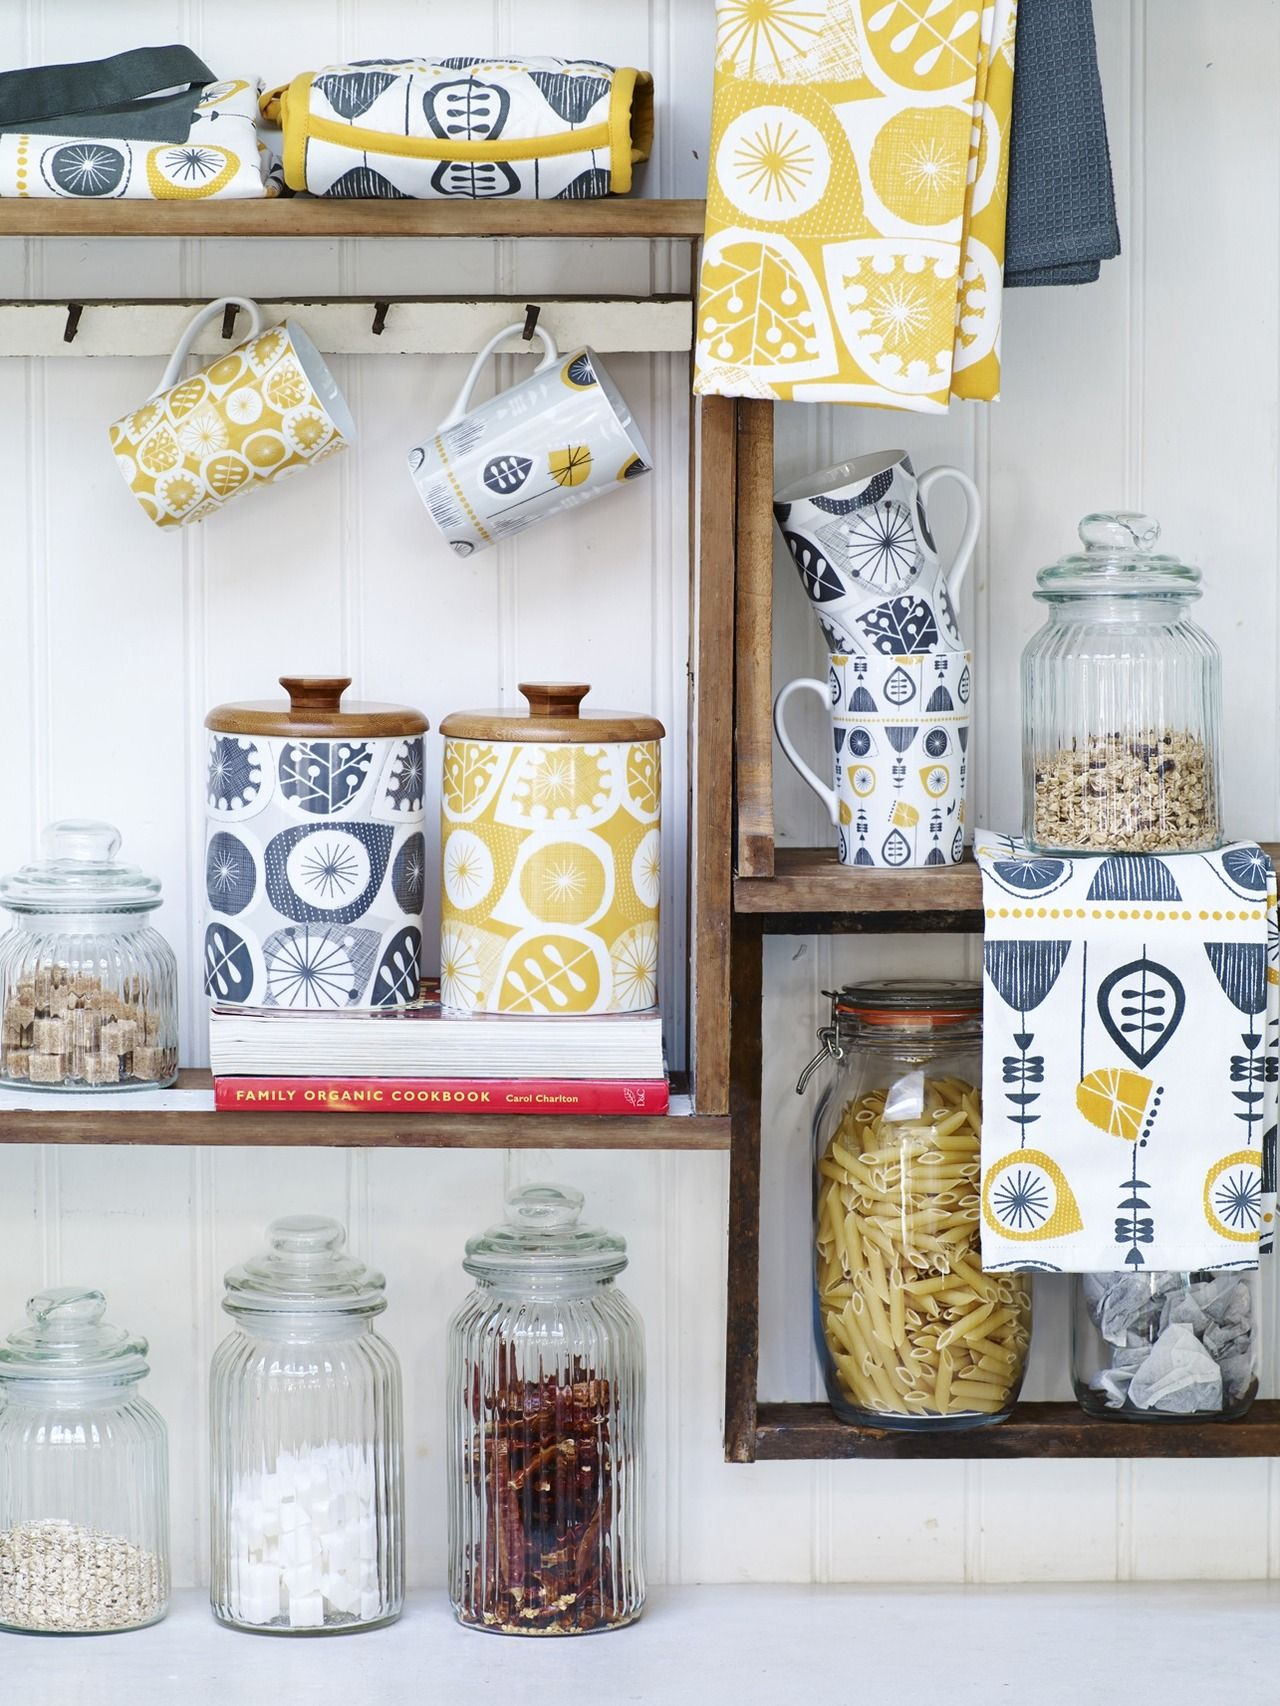 House Of Fraser. Linea By Michelle Mason Seed Pod Kitchen Range, From £5